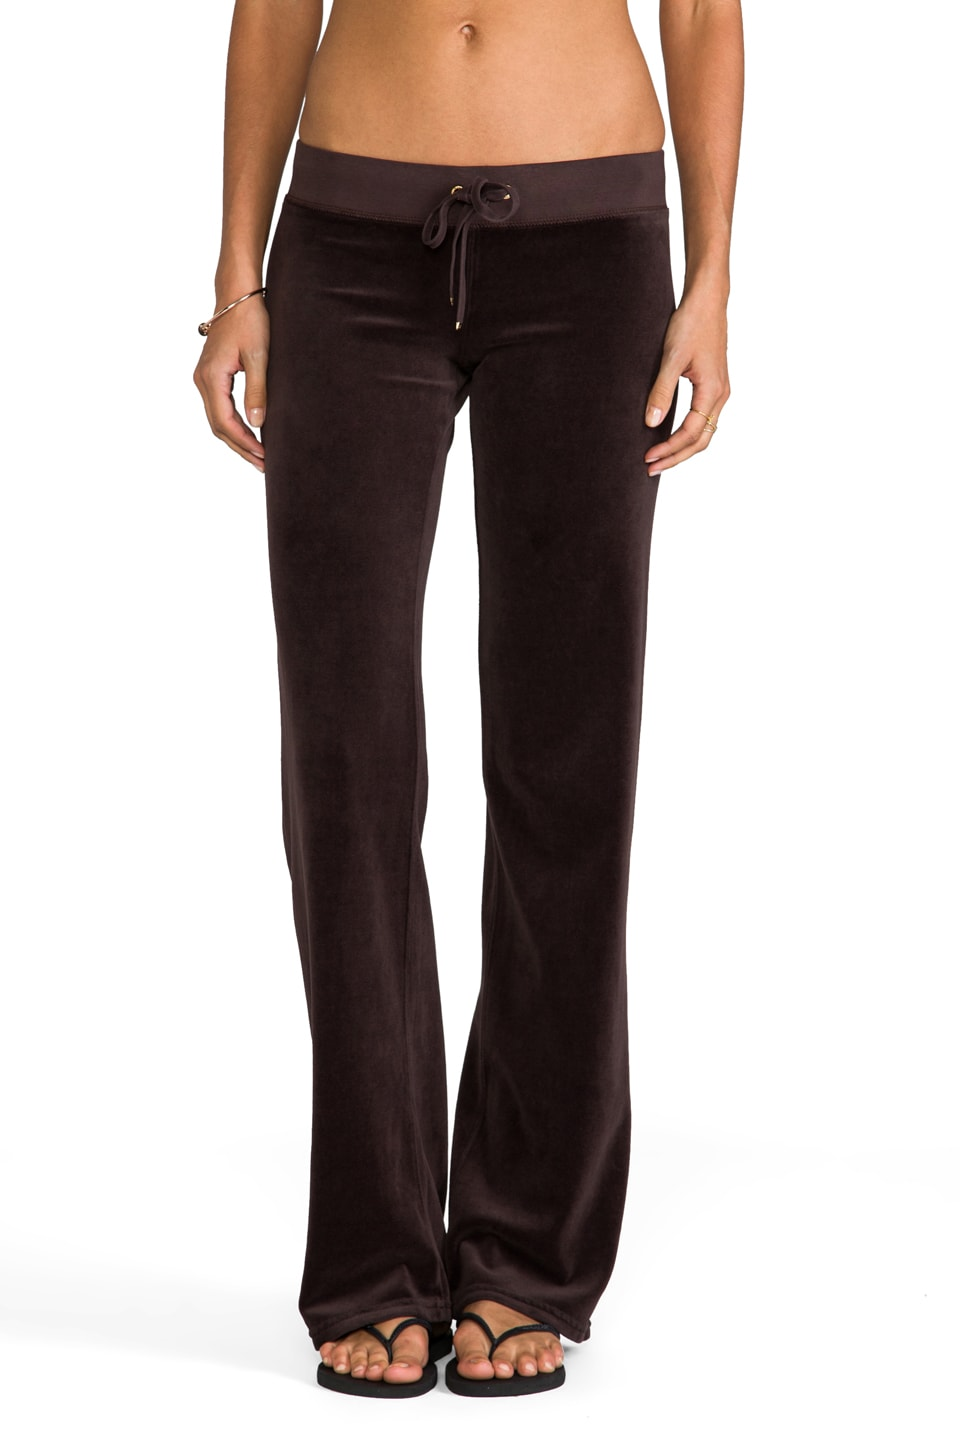 Juicy Couture Classic Velour Original Leg Pant in Chestnut